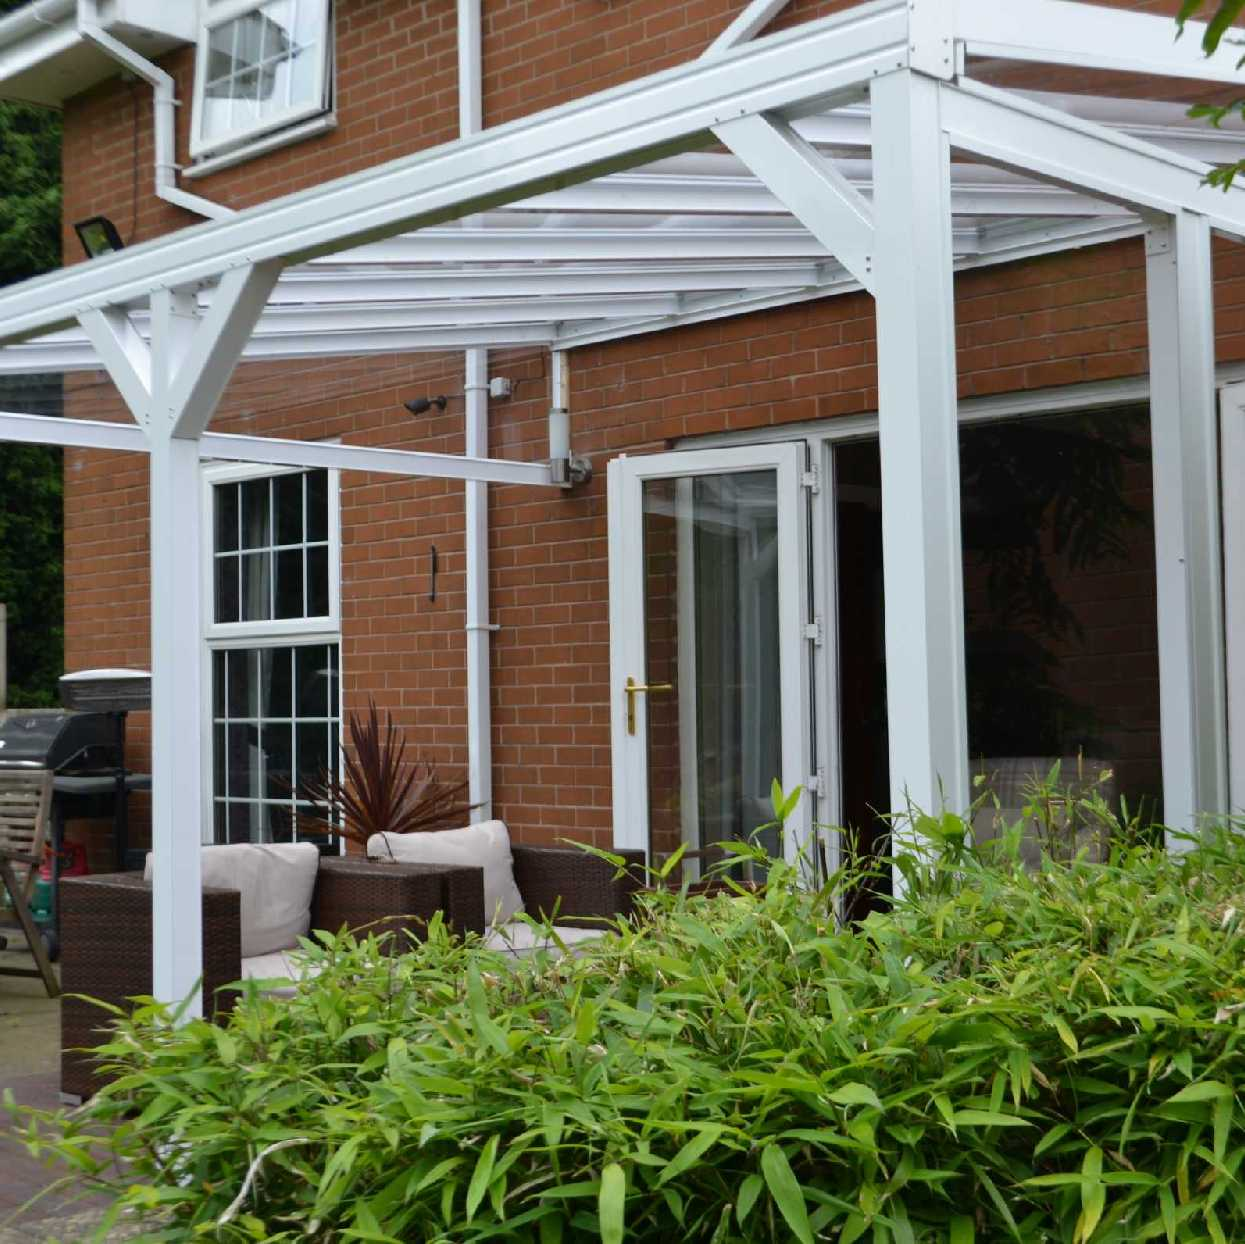 Omega Smart White Lean-To Canopy with 6mm Glass Clear Plate Polycarbonate Glazing - 7.7m (W) x 2.0m (P), (4) Supporting Posts from Omega Build